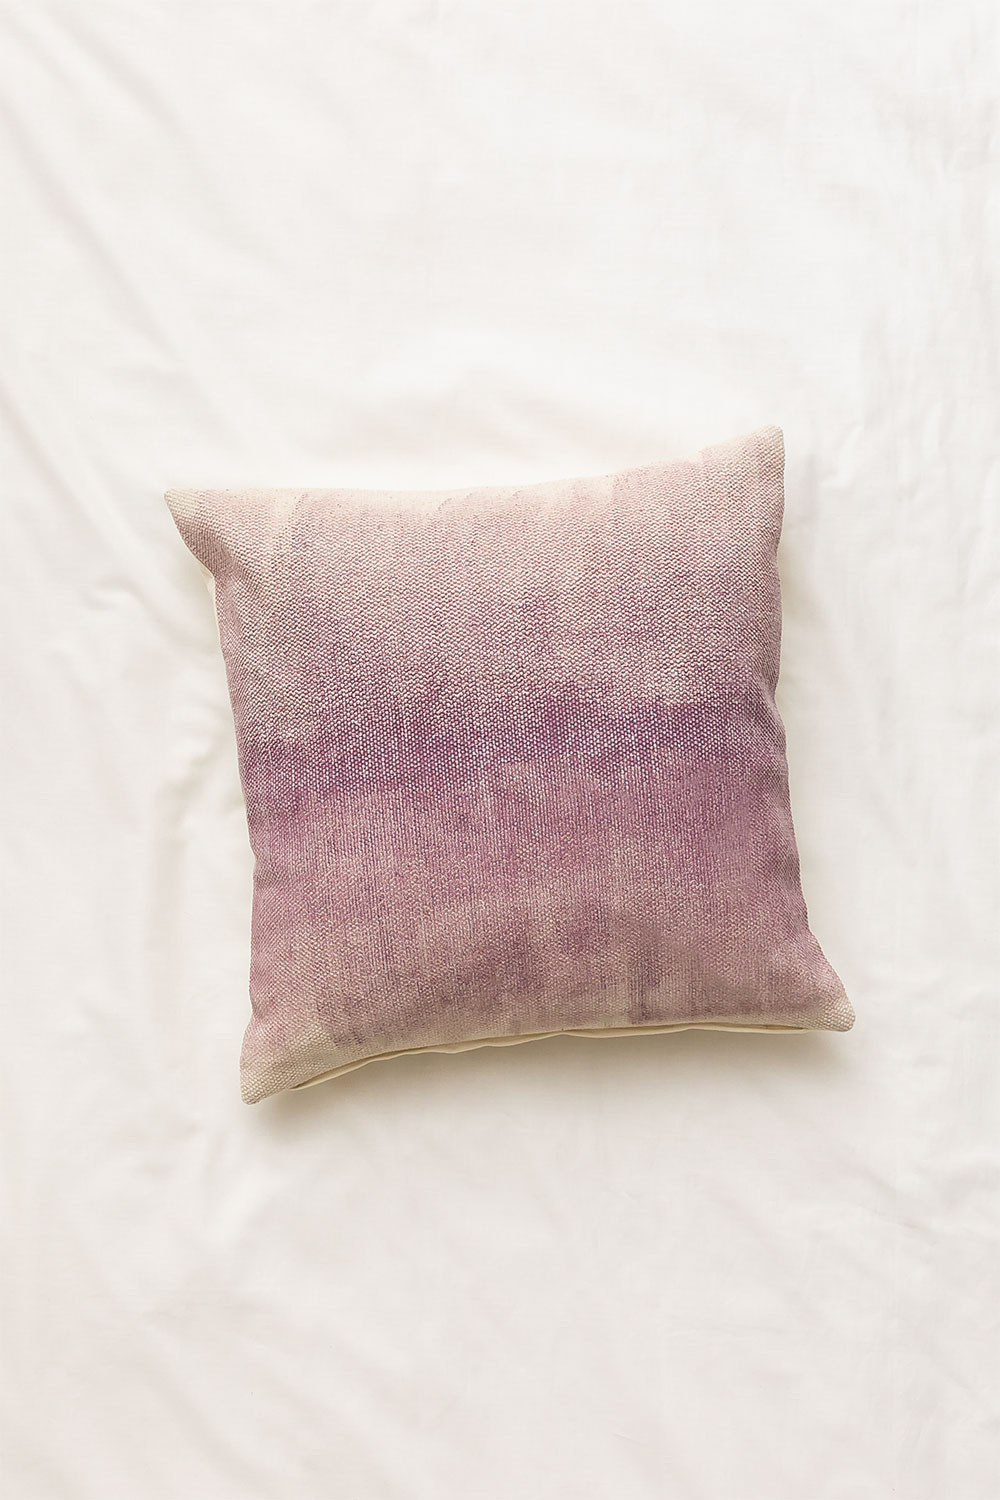 Lessy Cushion Cover, gallery image 1